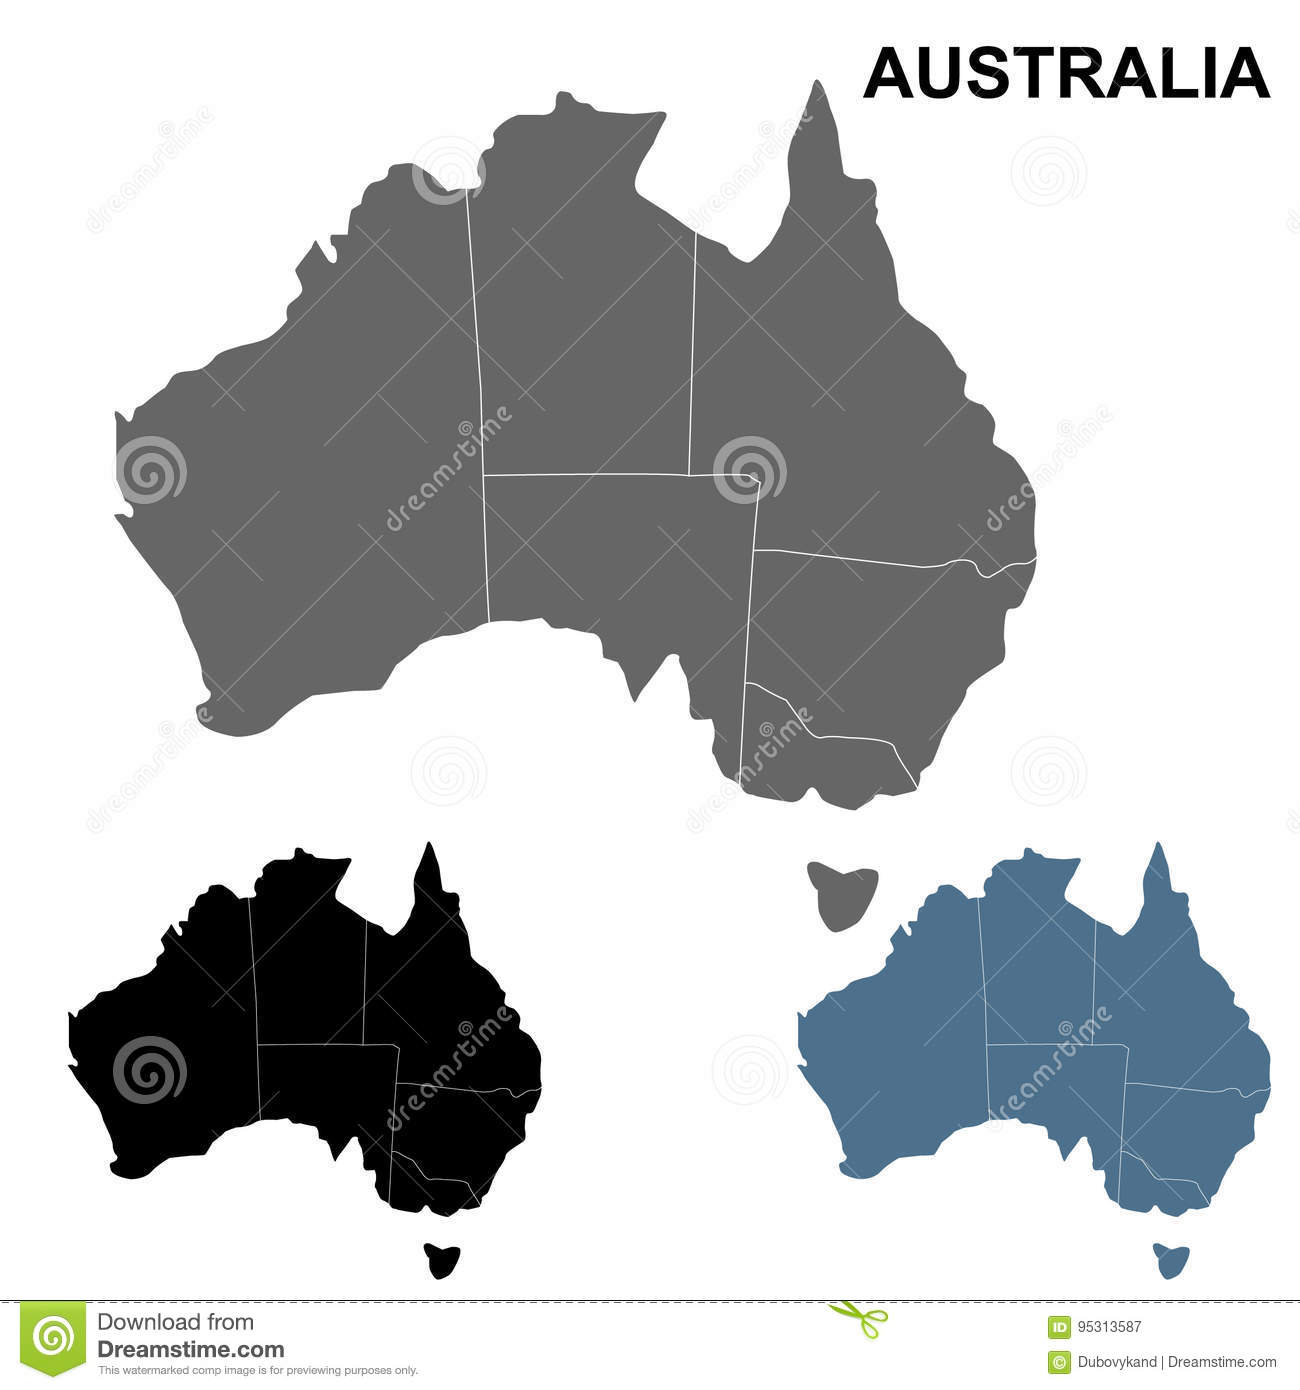 Australia Map Outline Vector.Australia Map Outline Set Stock Vector Illustration Of Monochrome